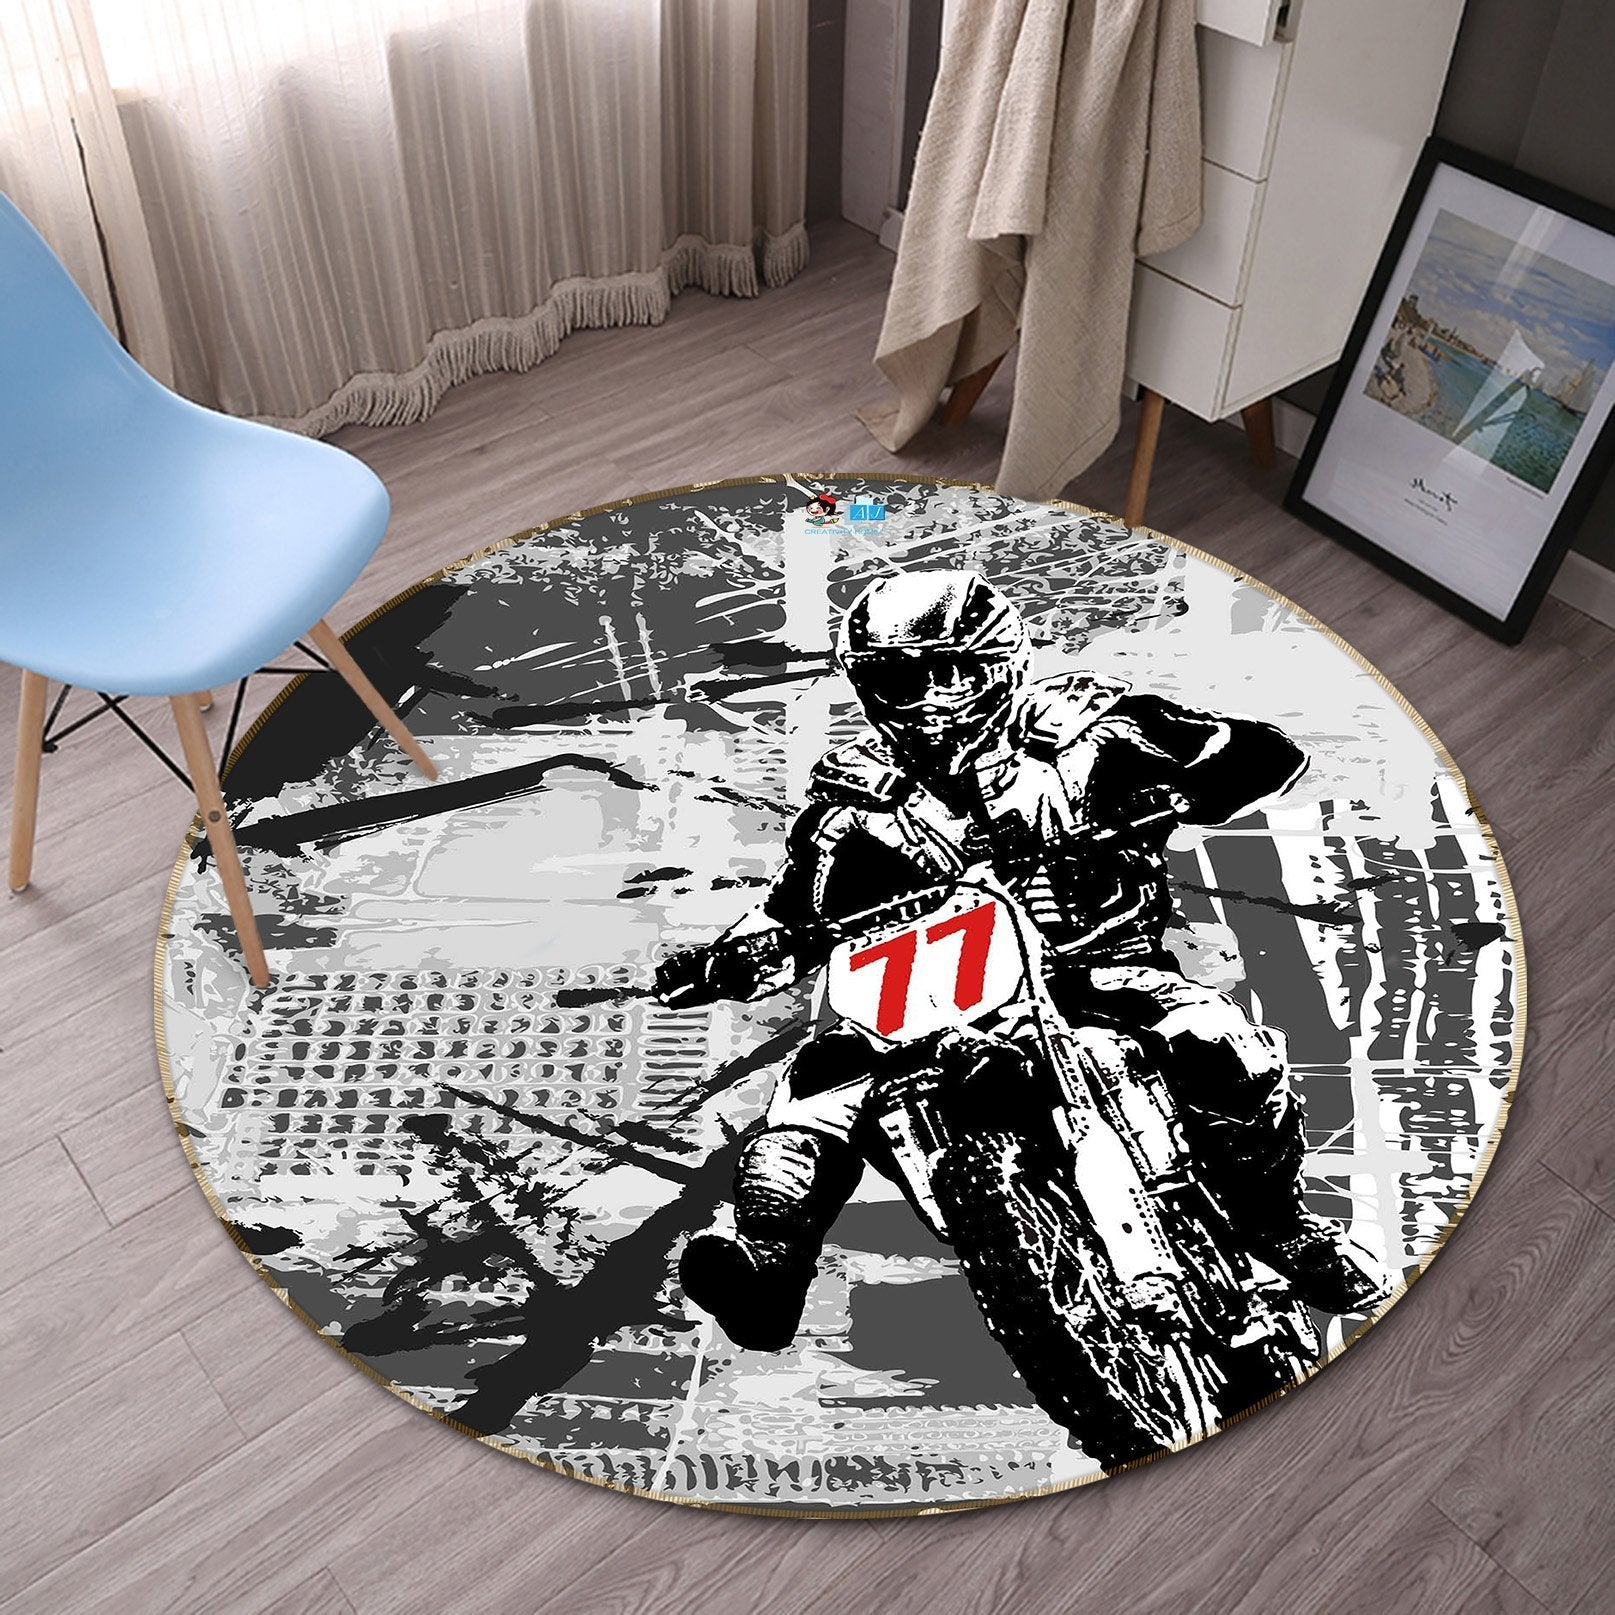 3D Painting Motorcycle 075 Round Non Slip Rug Mat Mat AJ Creativity Home